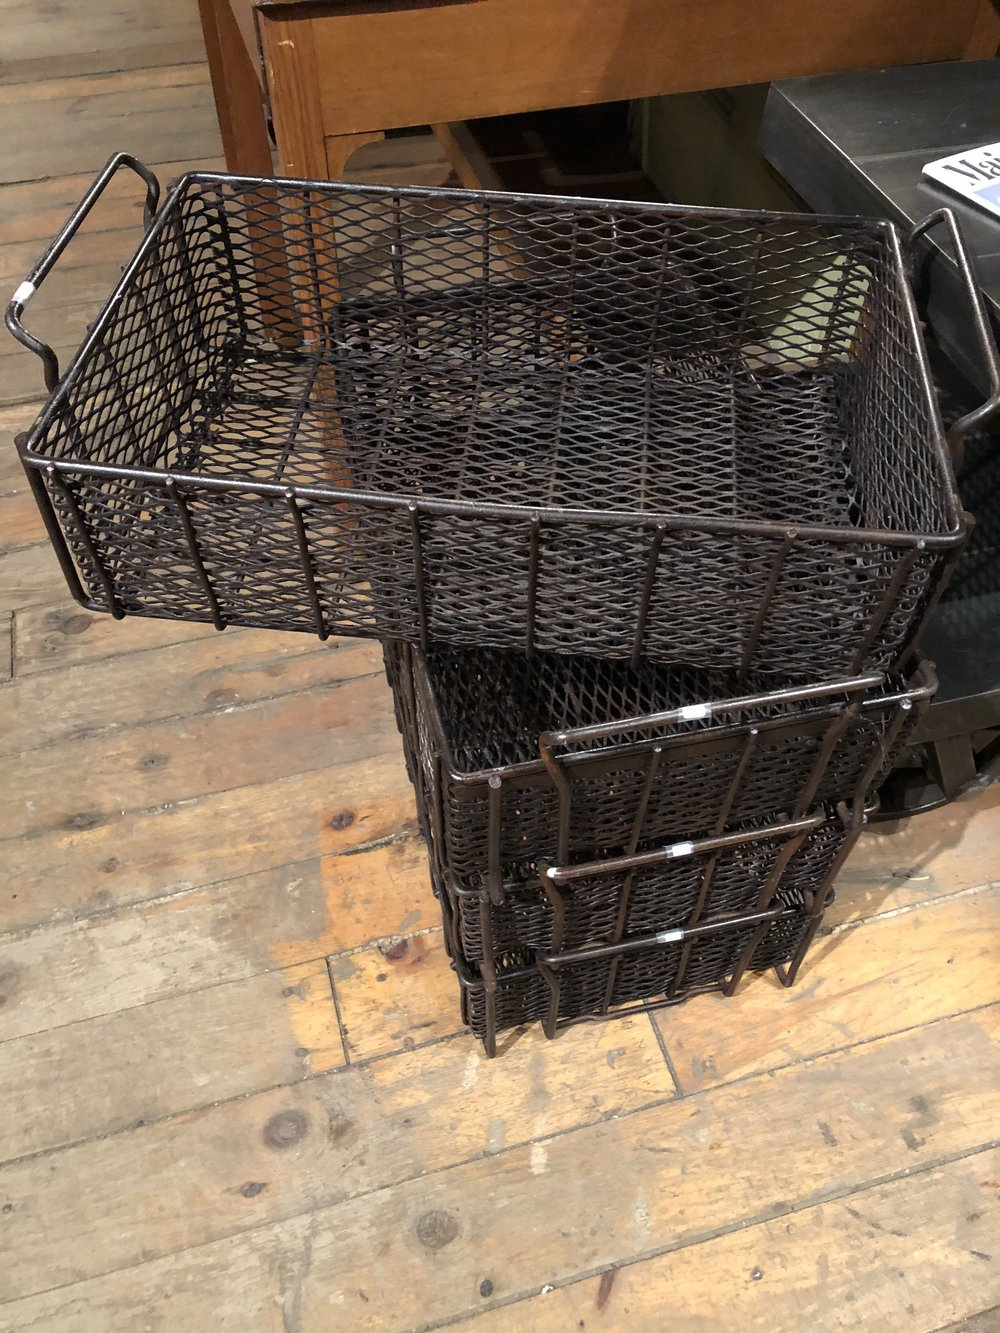 "In love with the size of these vintage industrial sorting baskets! Great stacking storage option. All cleaned and clear coated and ready to go! 22 1/4"" long including handles  x 13 1/2"" wide x 5 1/4"" deep. Multiples available.        $55. each"